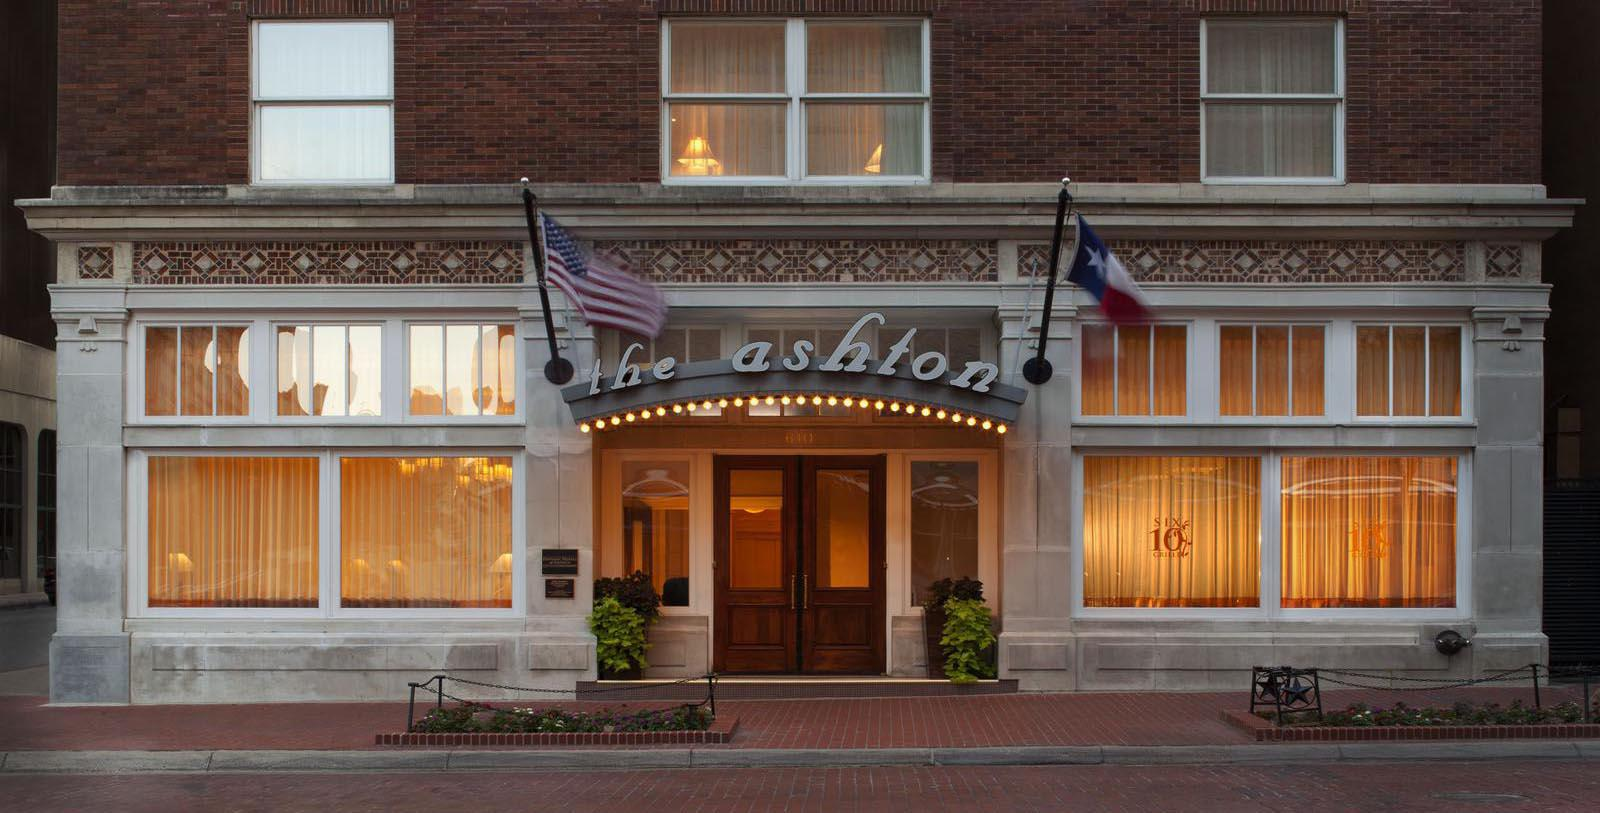 Image of Entrance The Ashton Hotel, 1915, Member of Historic Hotels of America, in Fort Worth, Texas, Overview